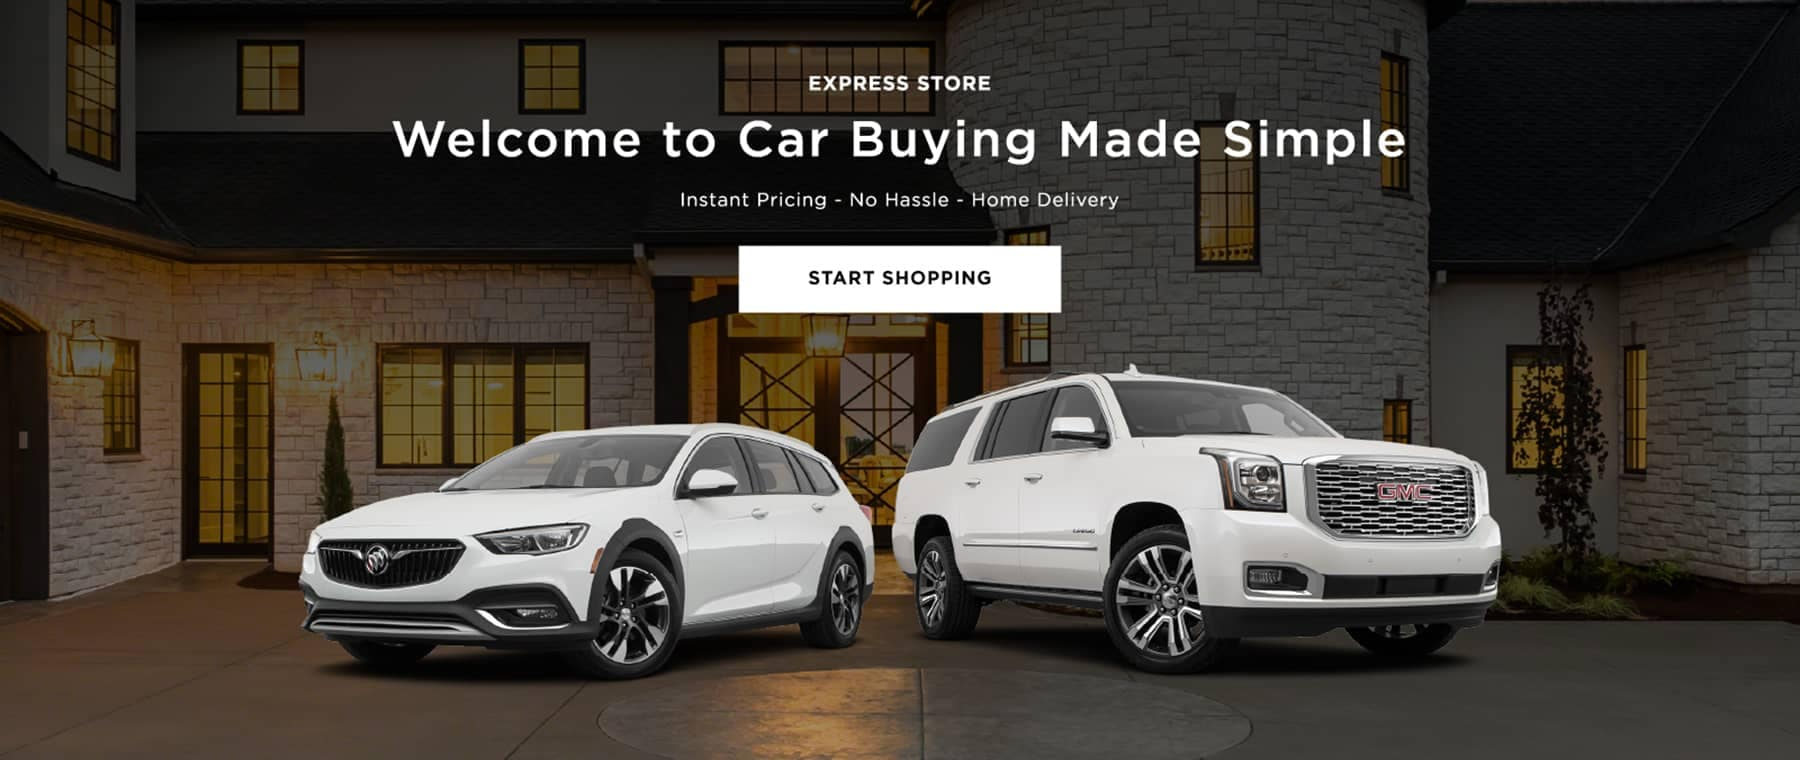 Car buying made simple